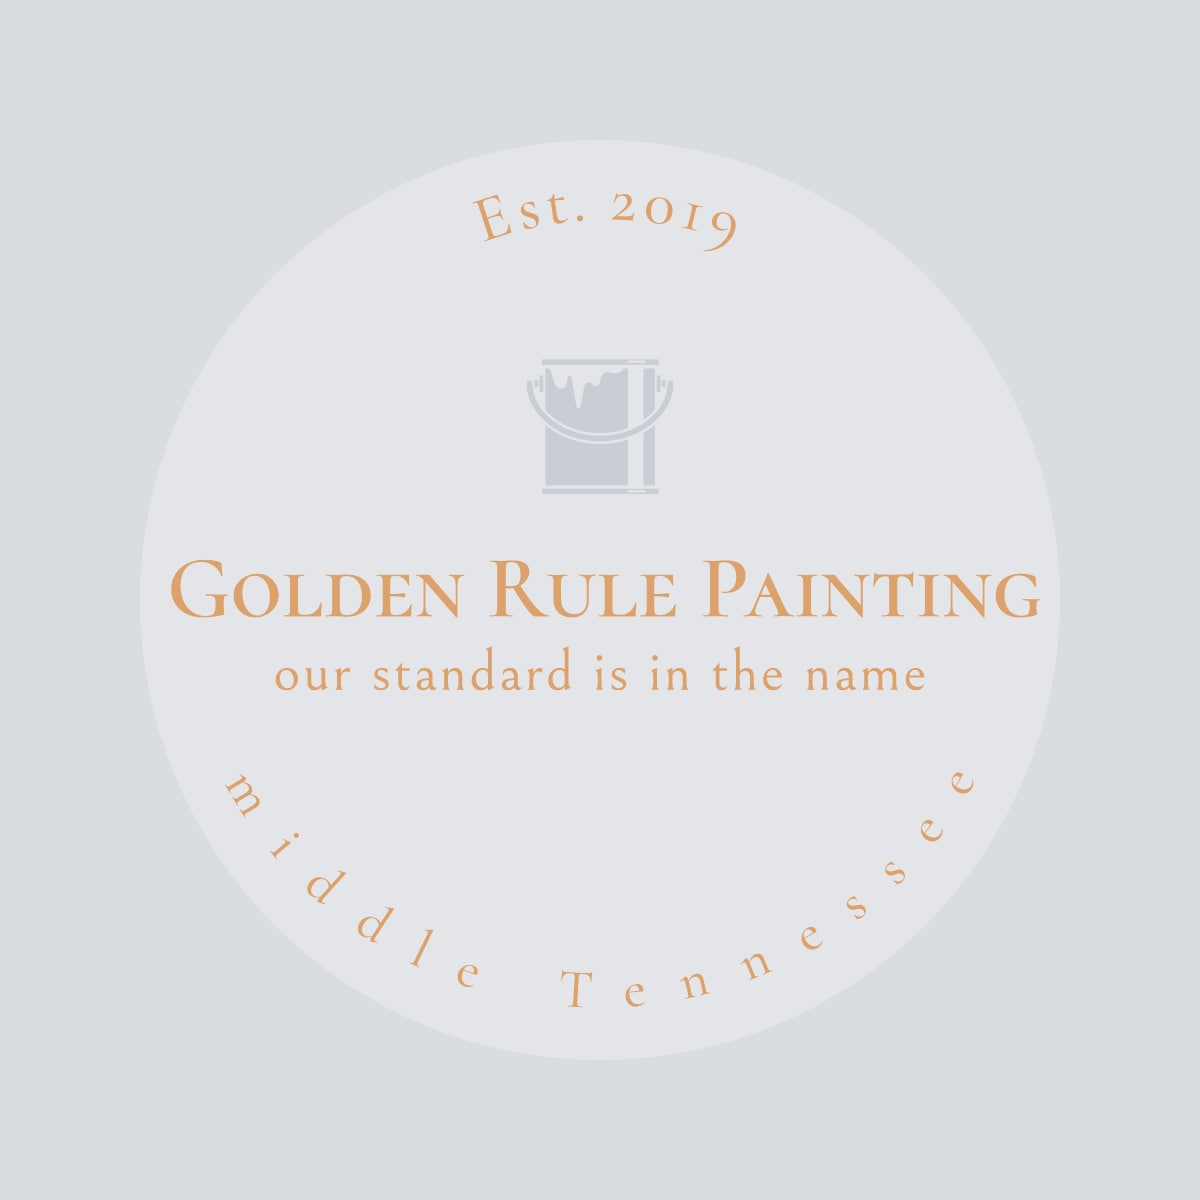 Golden Rule Painting